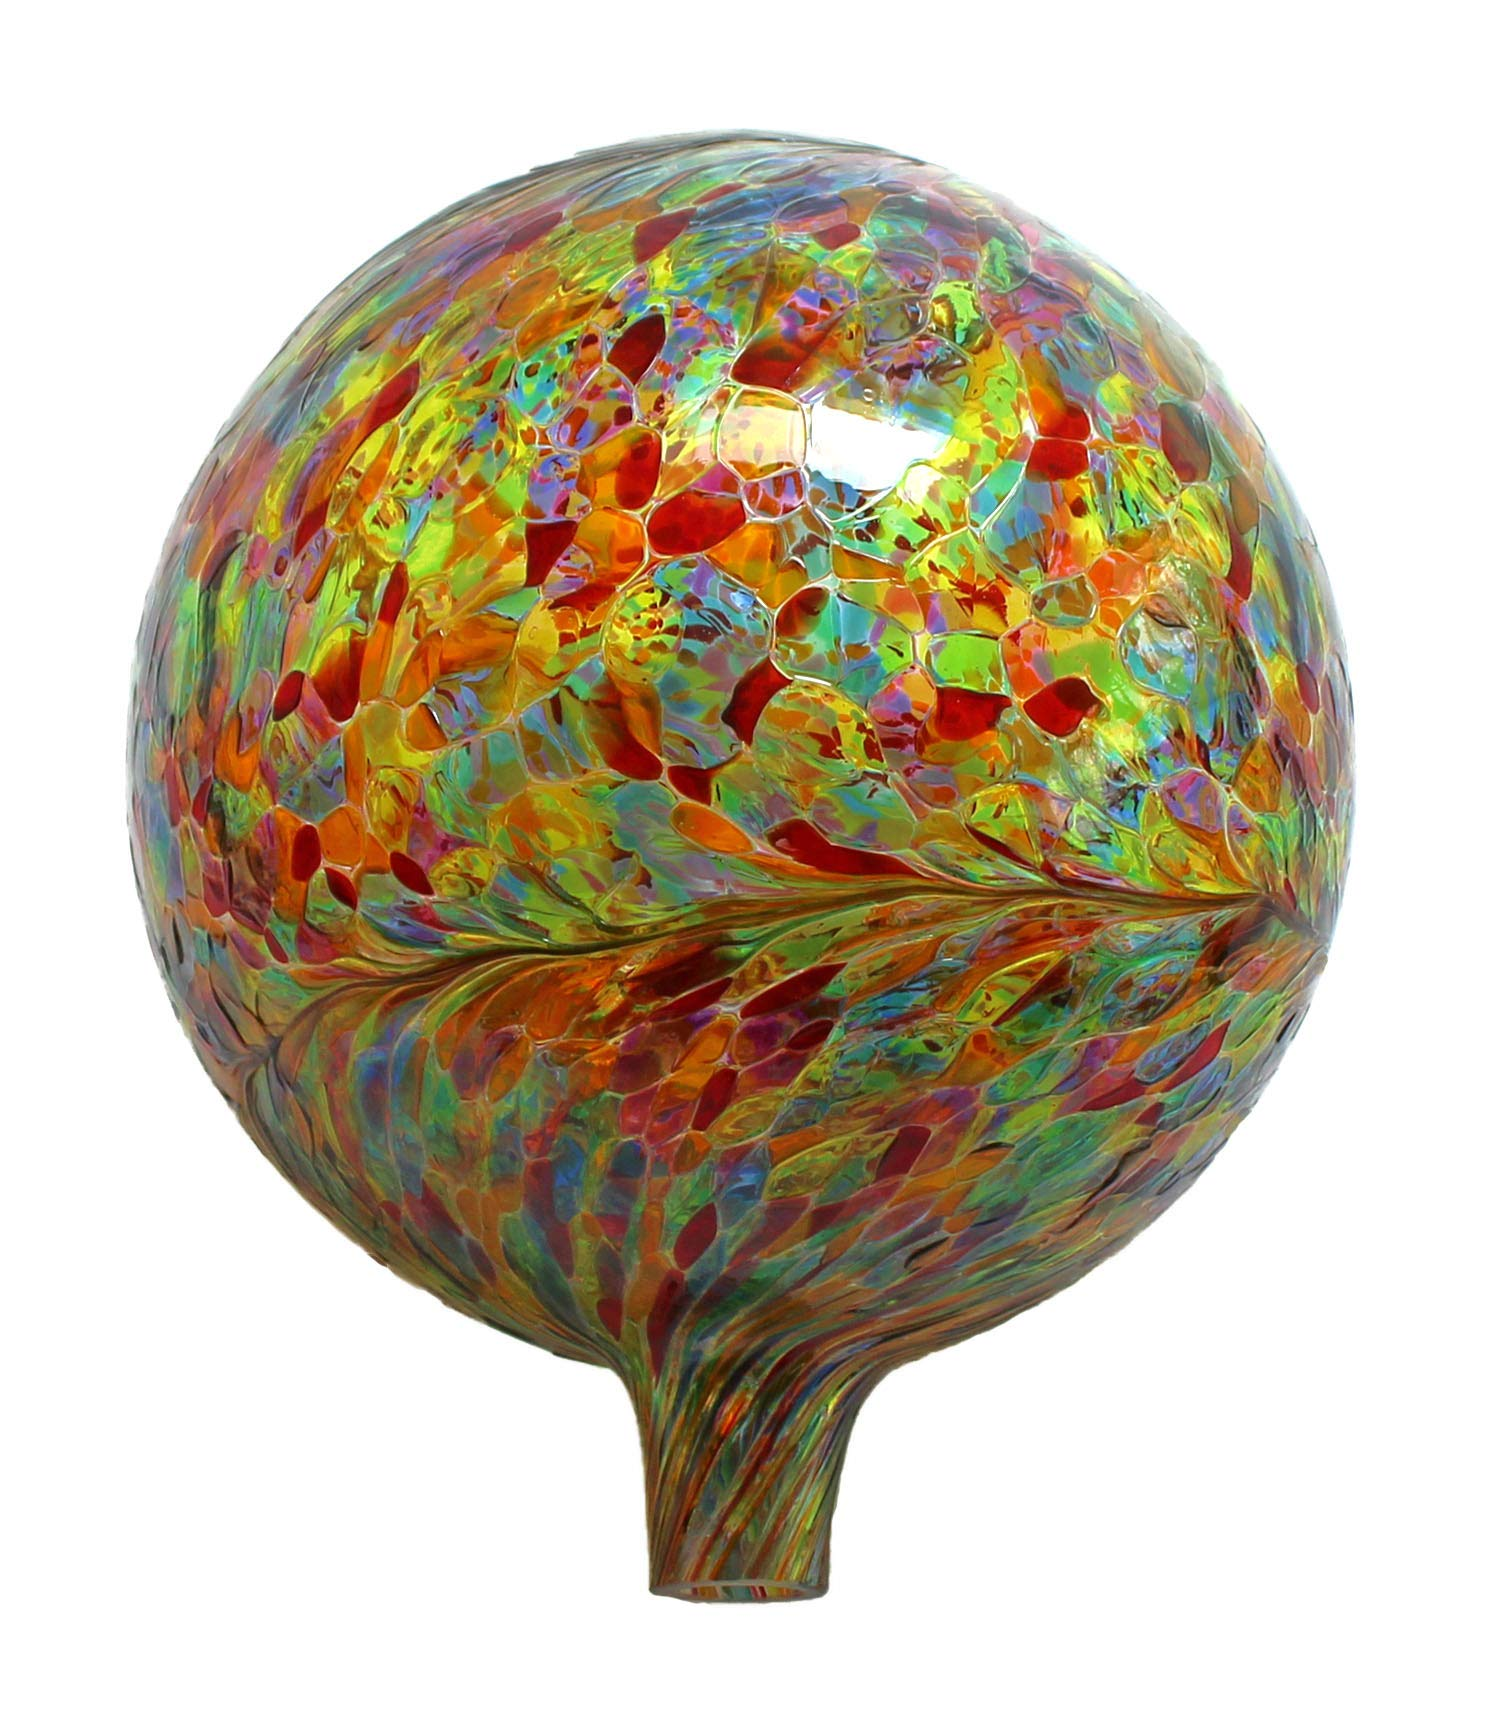 Glass Gazing Ball Transparent Multicolor 12 Inch by Iron Art Glass Designs